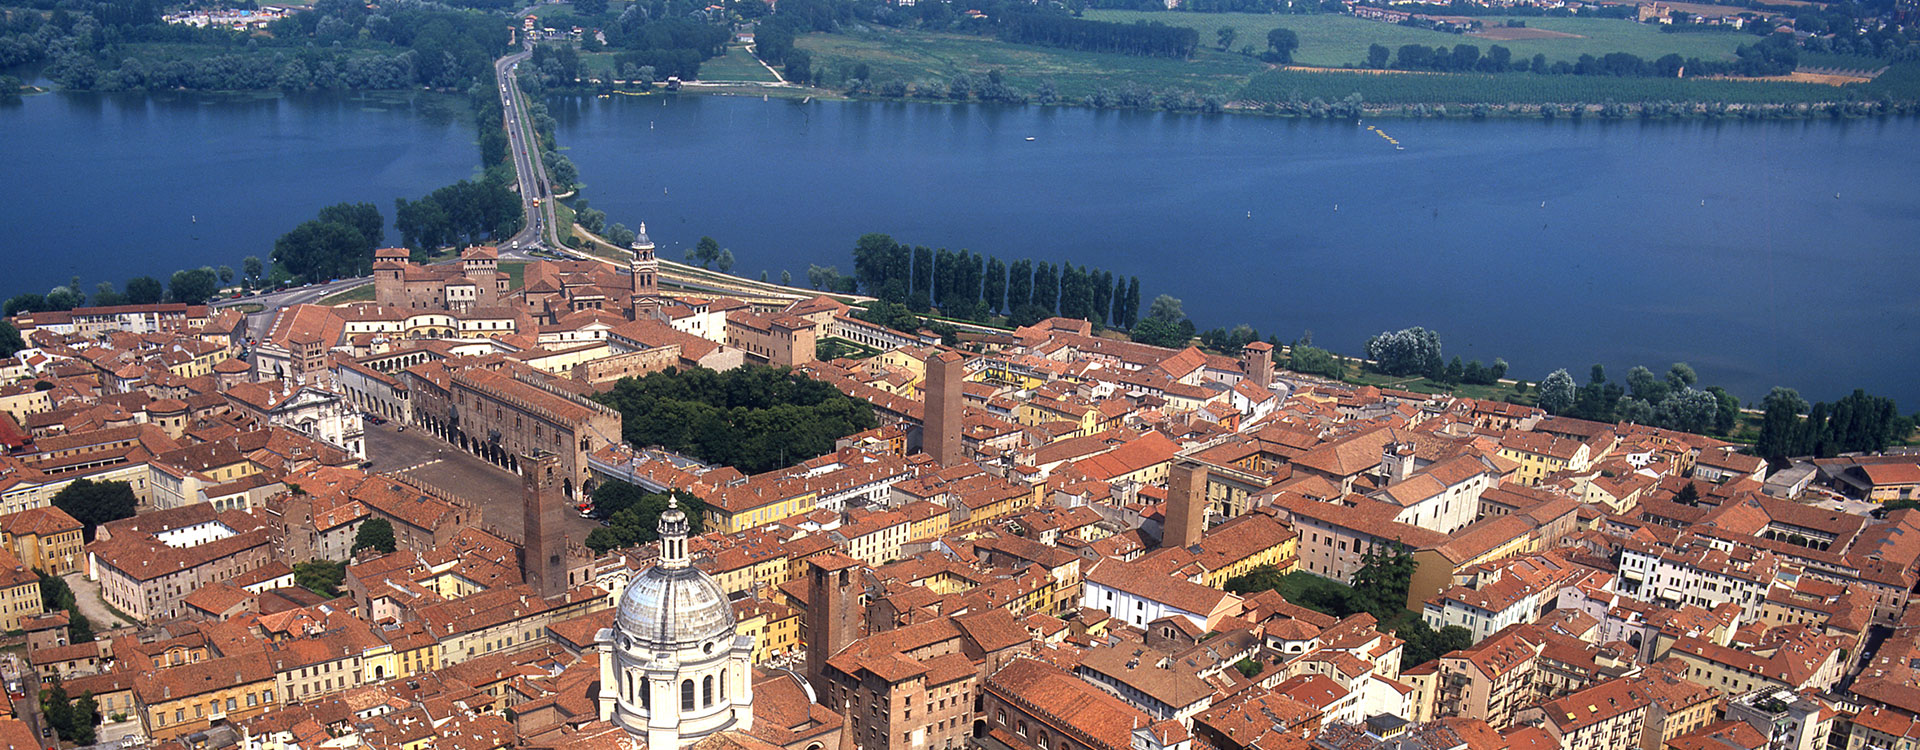 CittaDiMantova.it